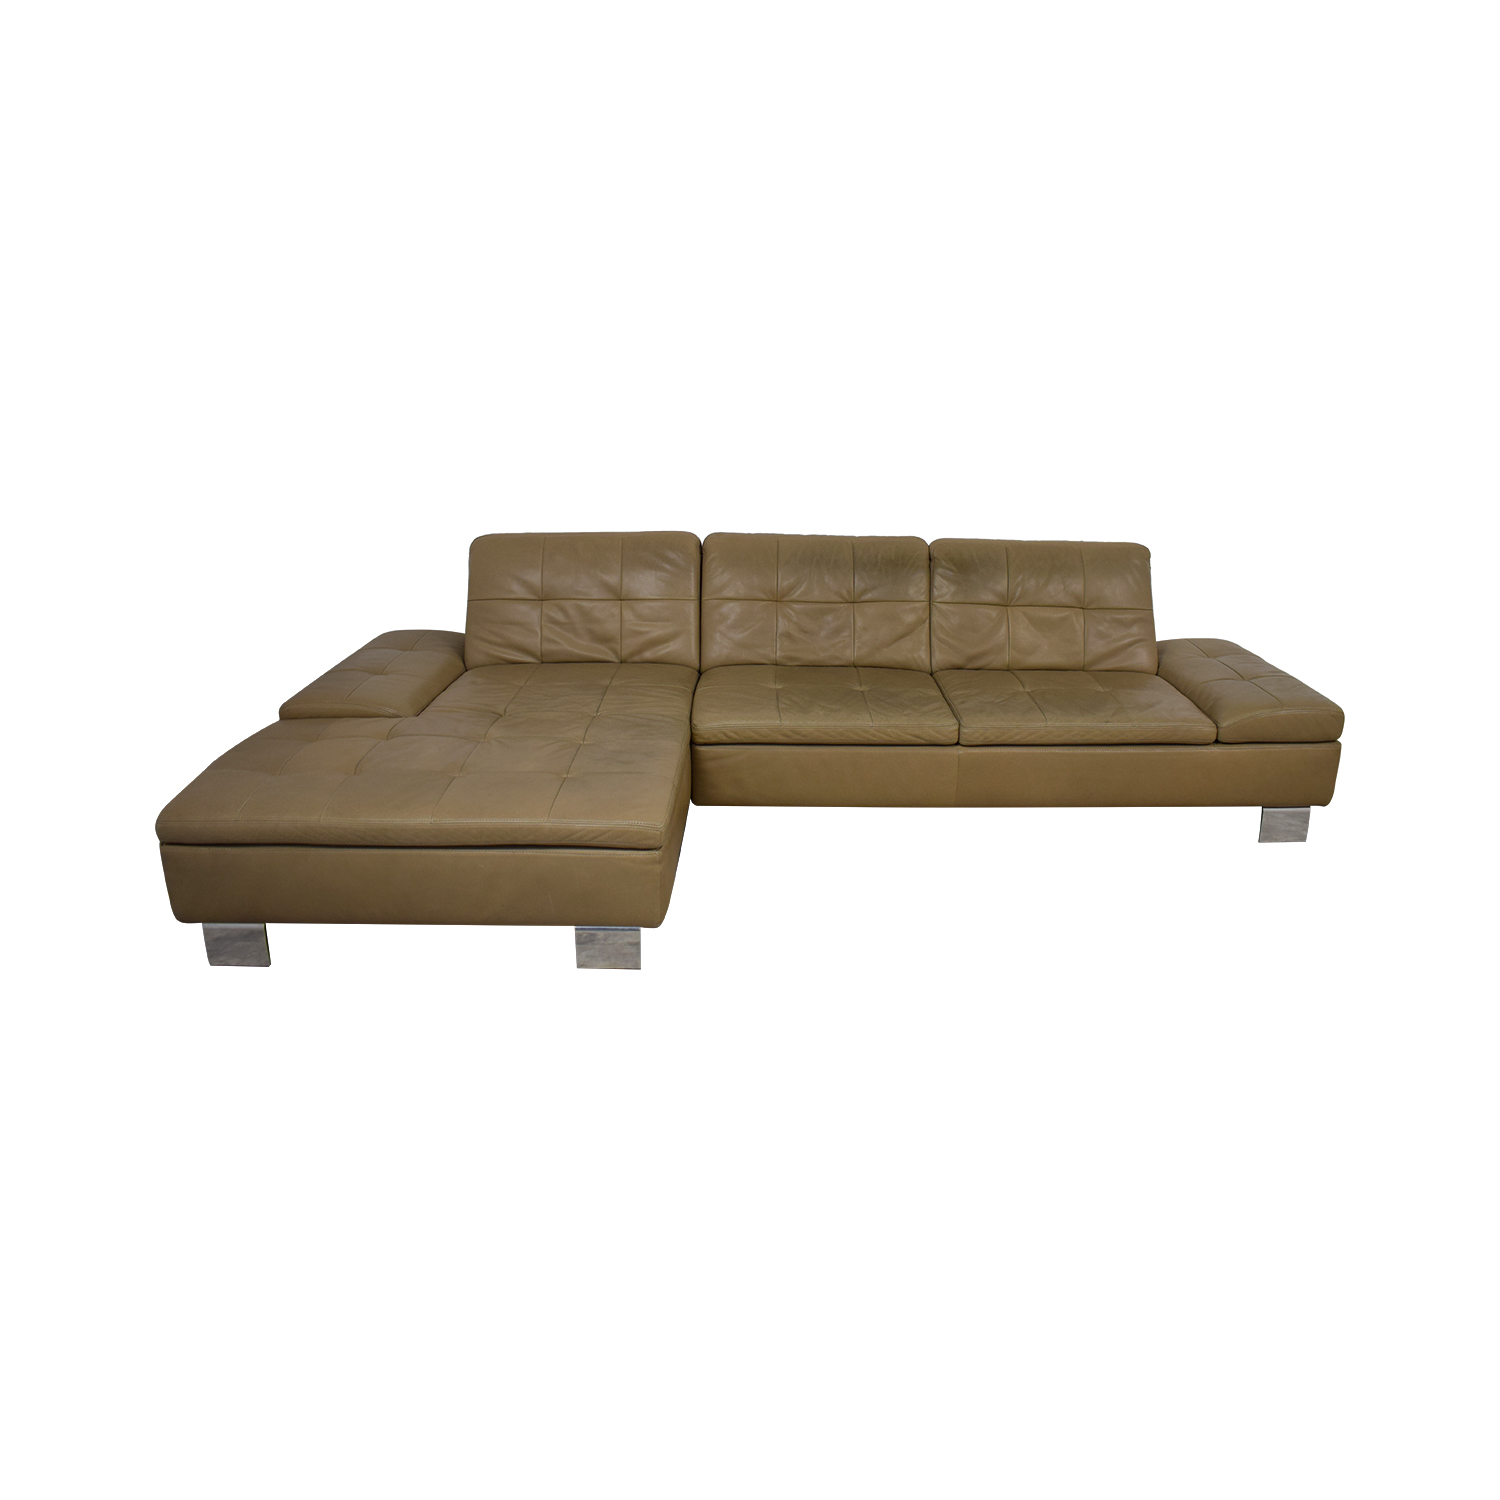 W. Schillig W. Schillig Contemporary Sectional Sofa in Natural Leather on sale